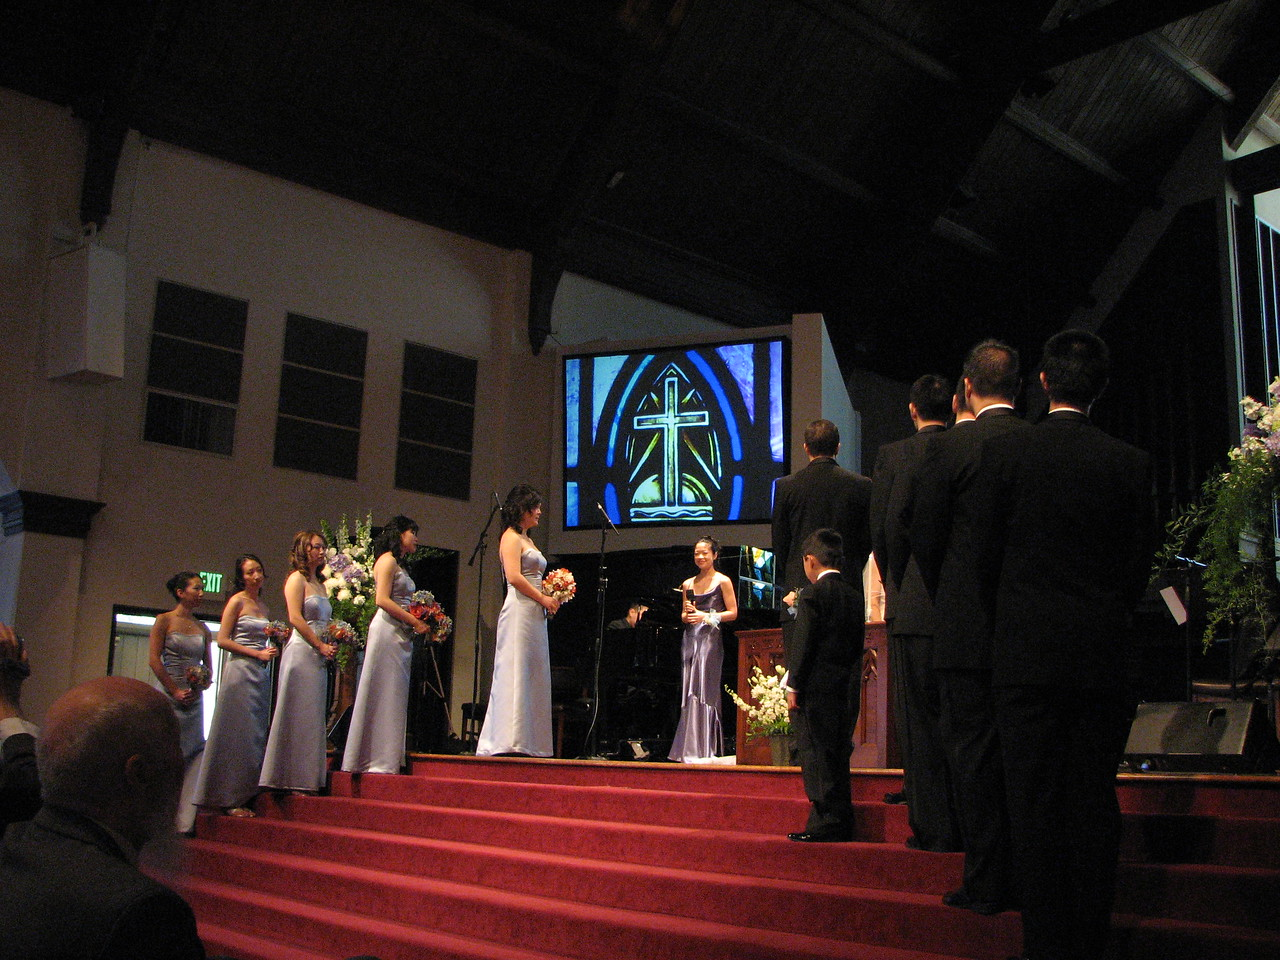 2007 05 19 Sat - Sister of the groom Amy Chang & brother of the bride Pedro Cheung sing 'Remember Me'